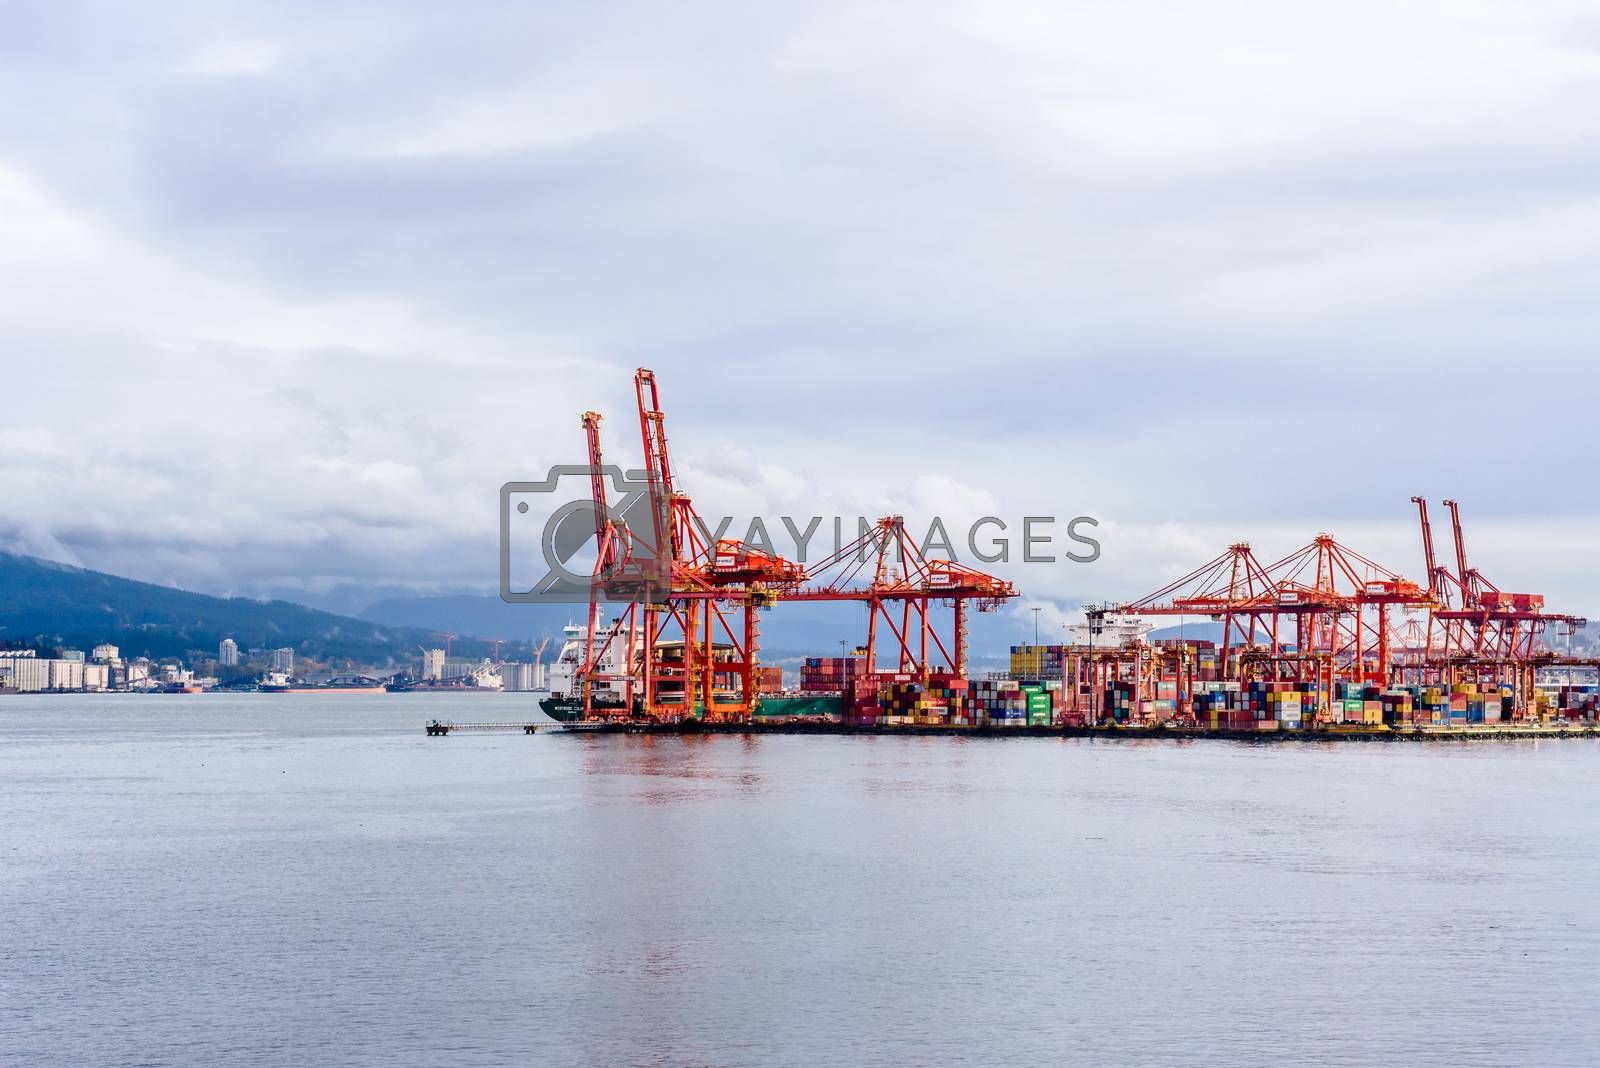 VANCOUVER, BC, CANADA - OCTOBER 28, 2018: Centennial Terminals is a major commercial dock with container cranes and heavy lift machinery.